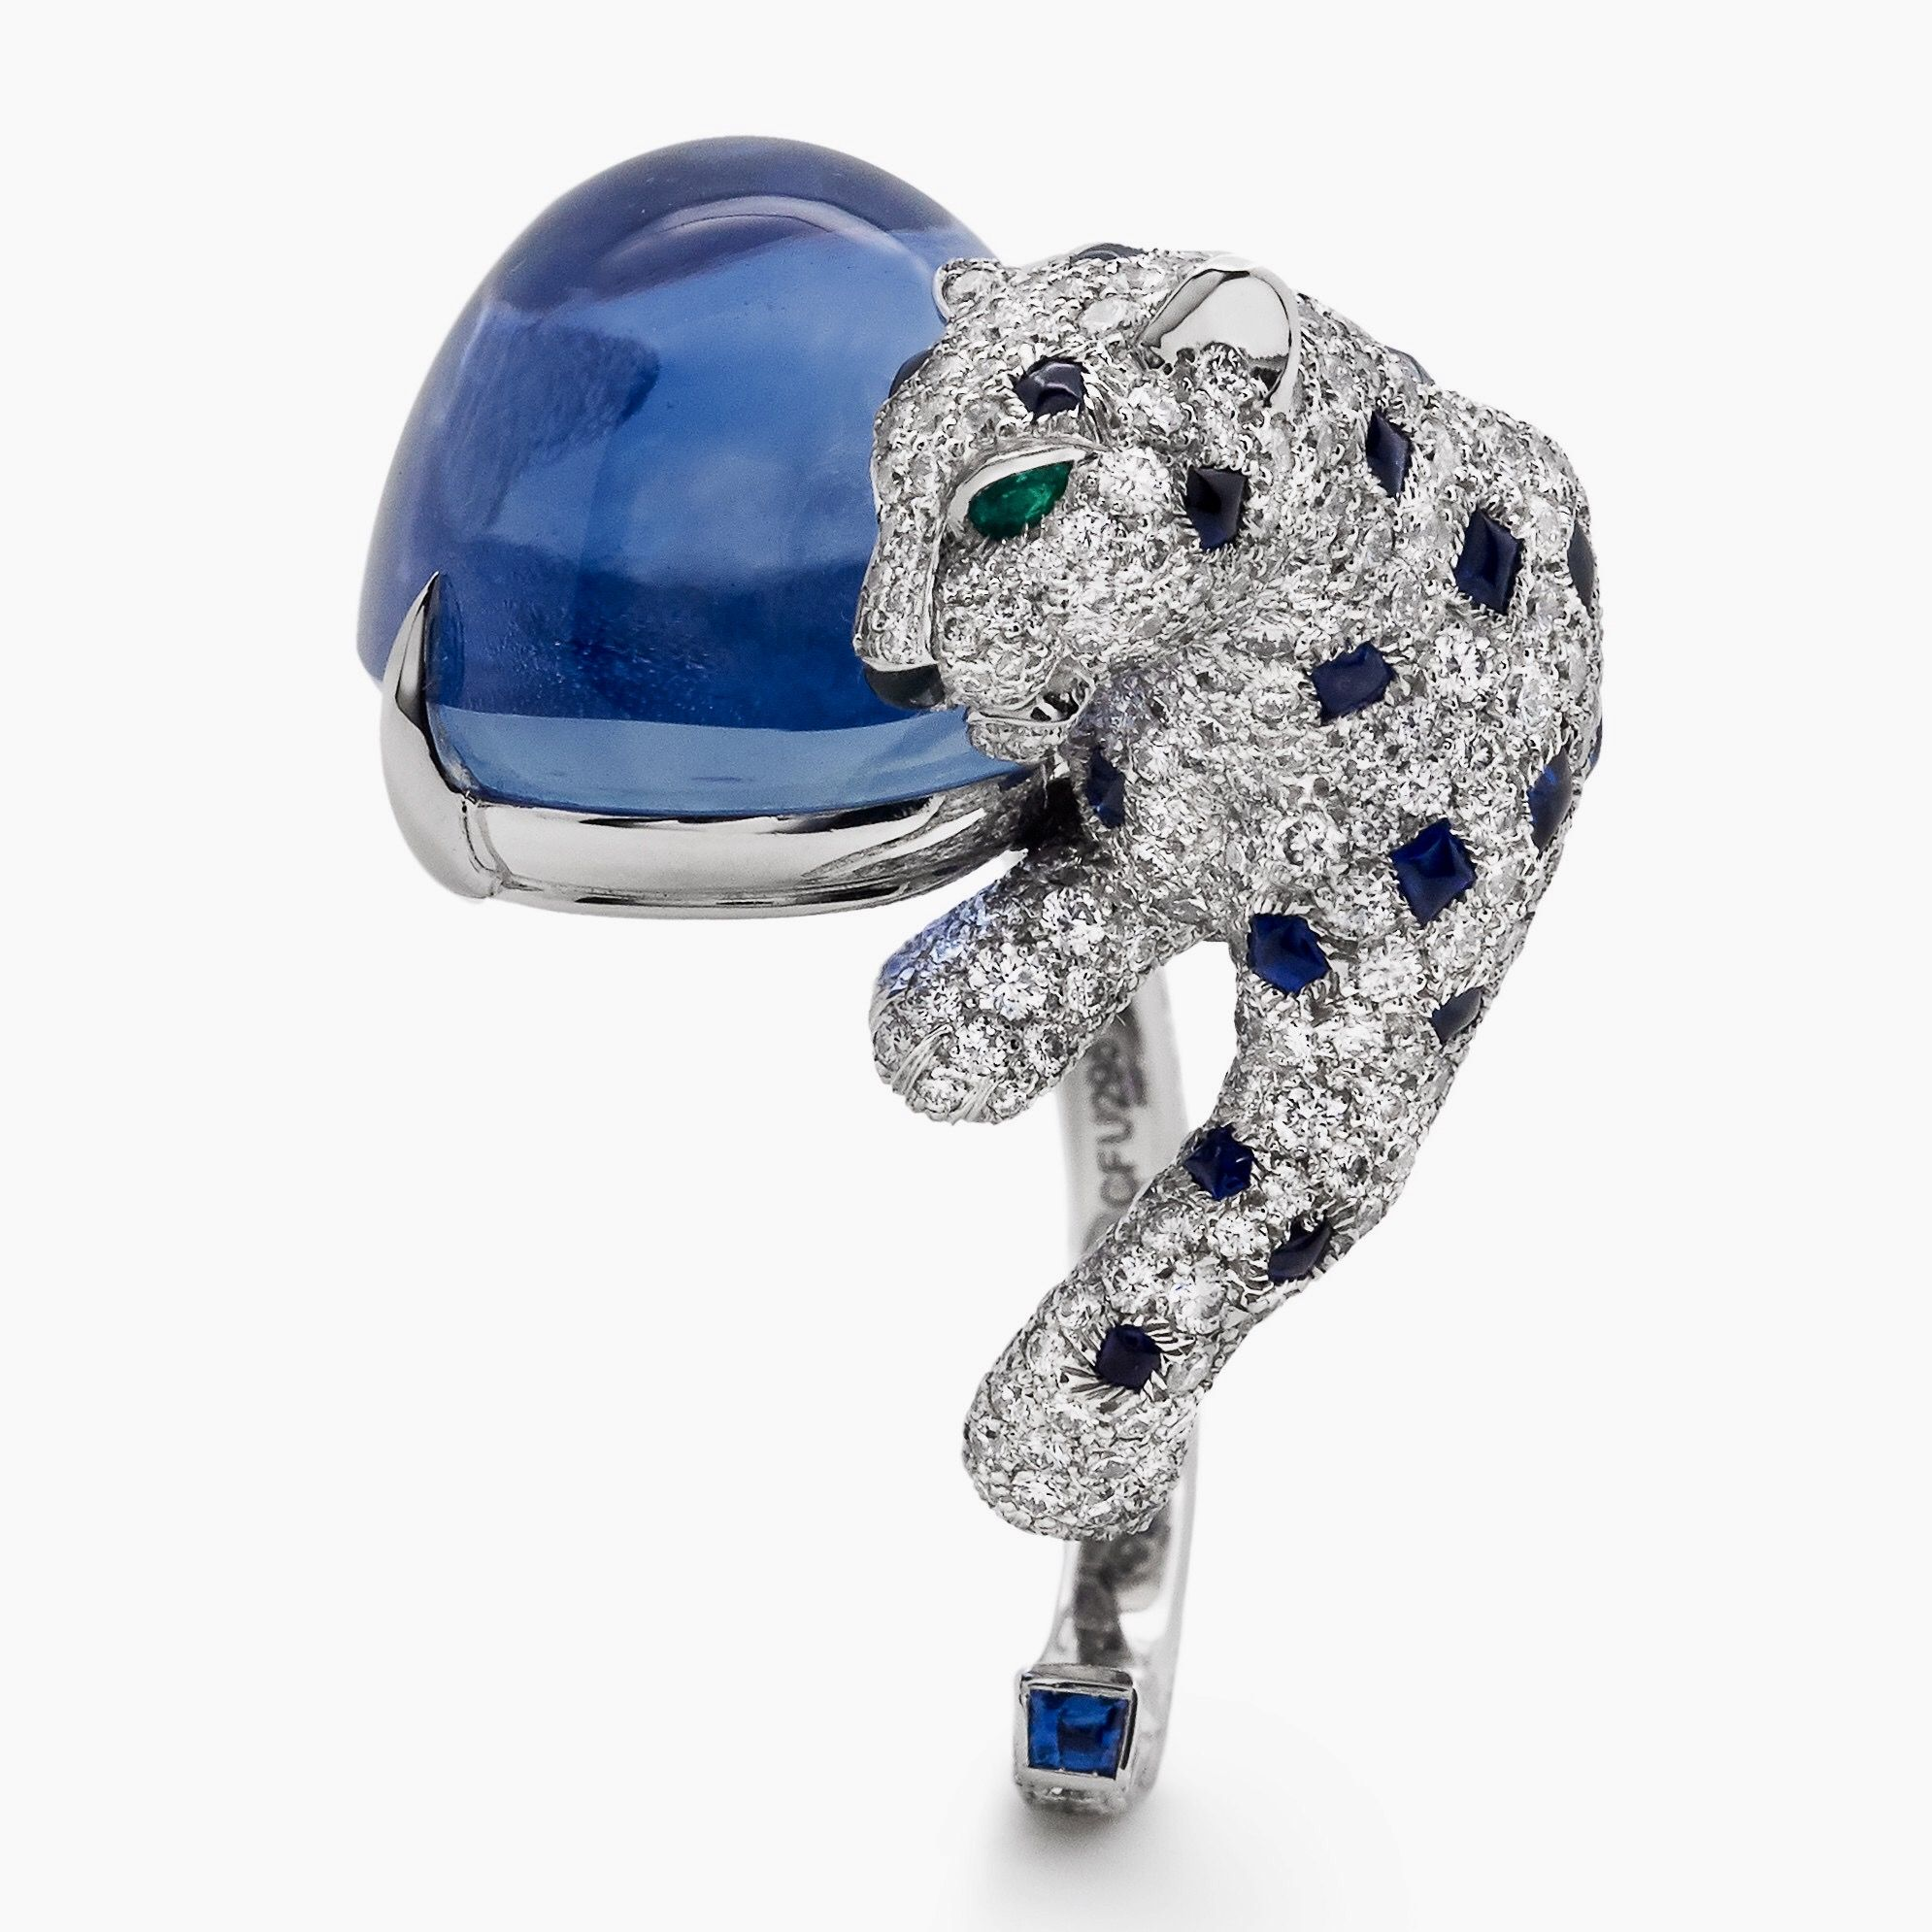 jewelry cartier s gnv earrings diamond lotfinder christie and lot sapphire details